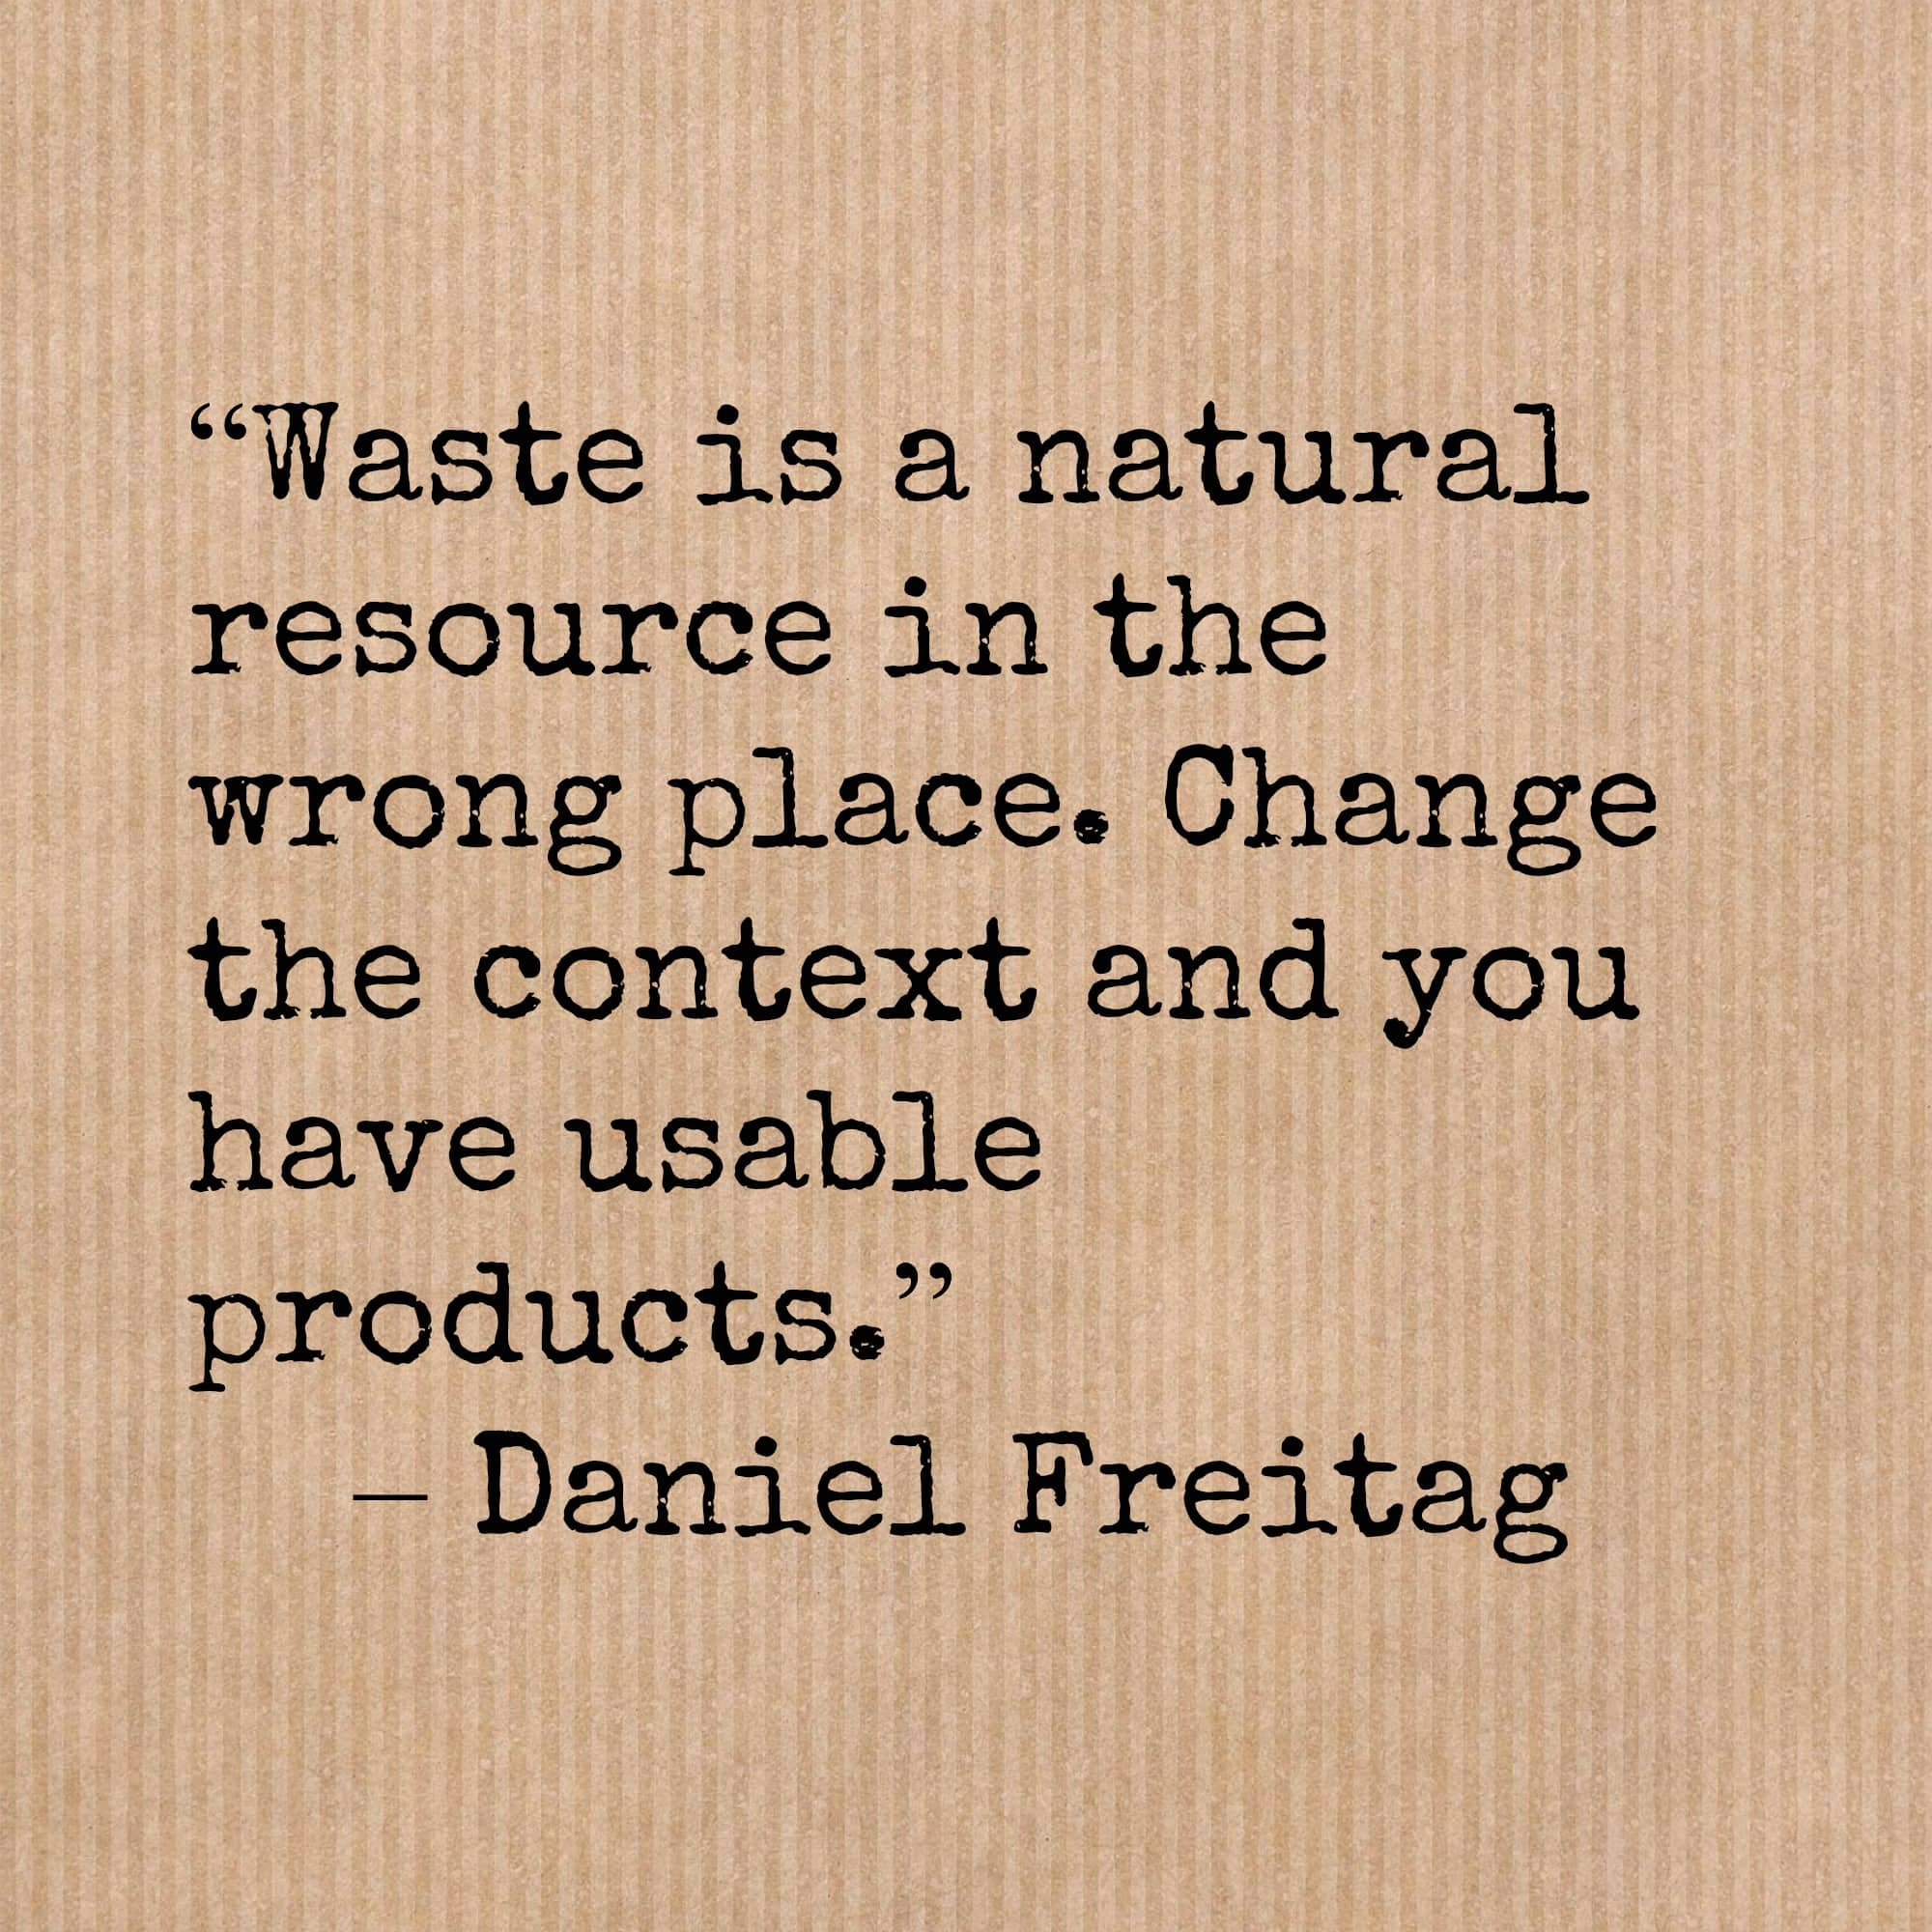 """Waste is a natural resource in the wrong place. Change the context and you have usable products."" – Daniel Freitag"